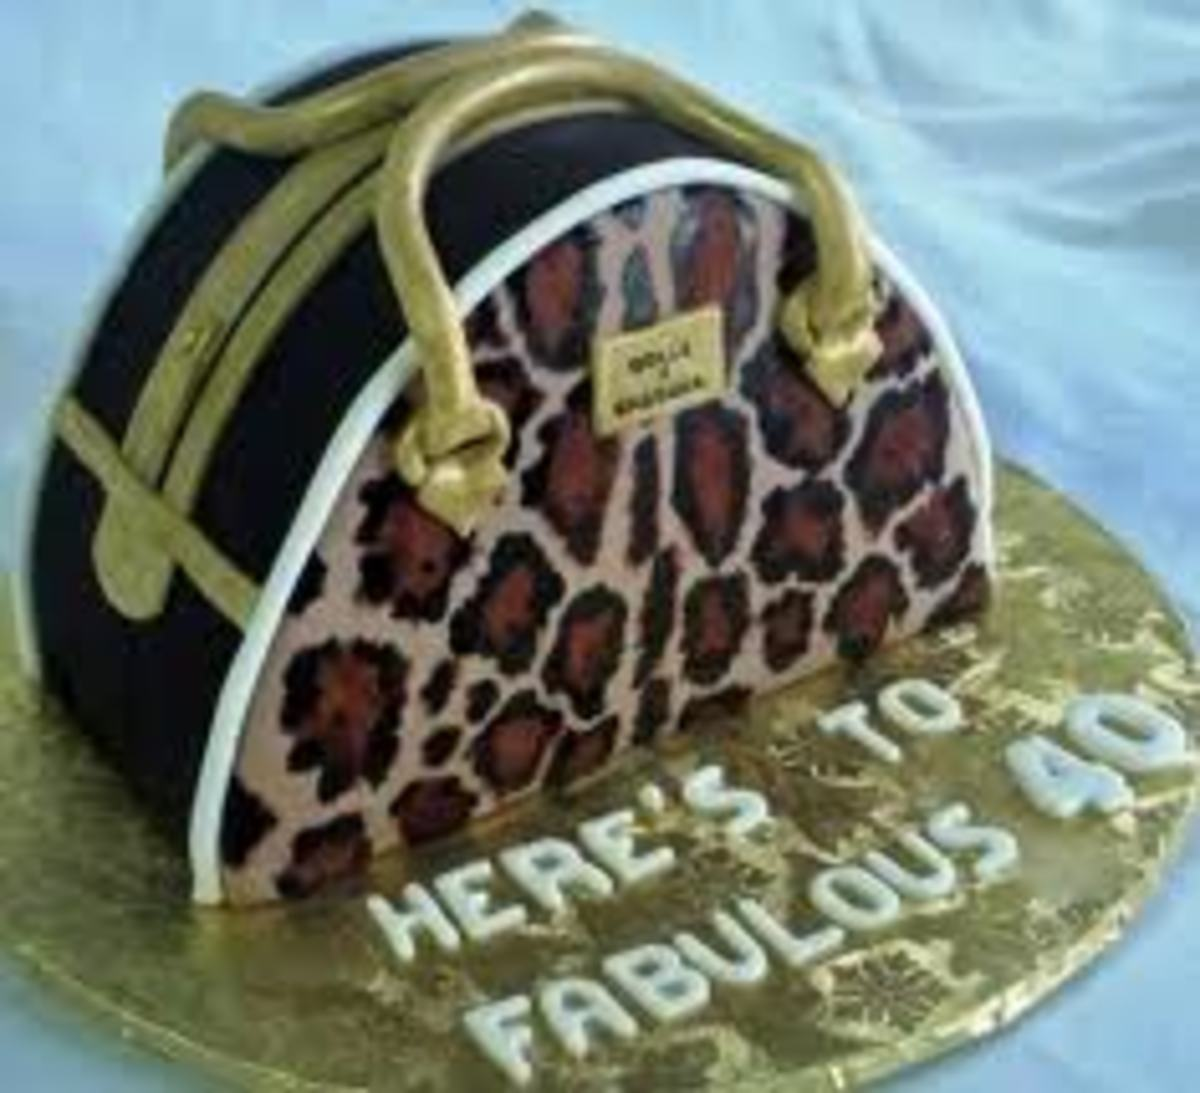 This cake is a mimic of thedesign of the Dolce and Gabbana Handbag Miss Biz purse. It was prepared by AJ's Moonlight Bakery.